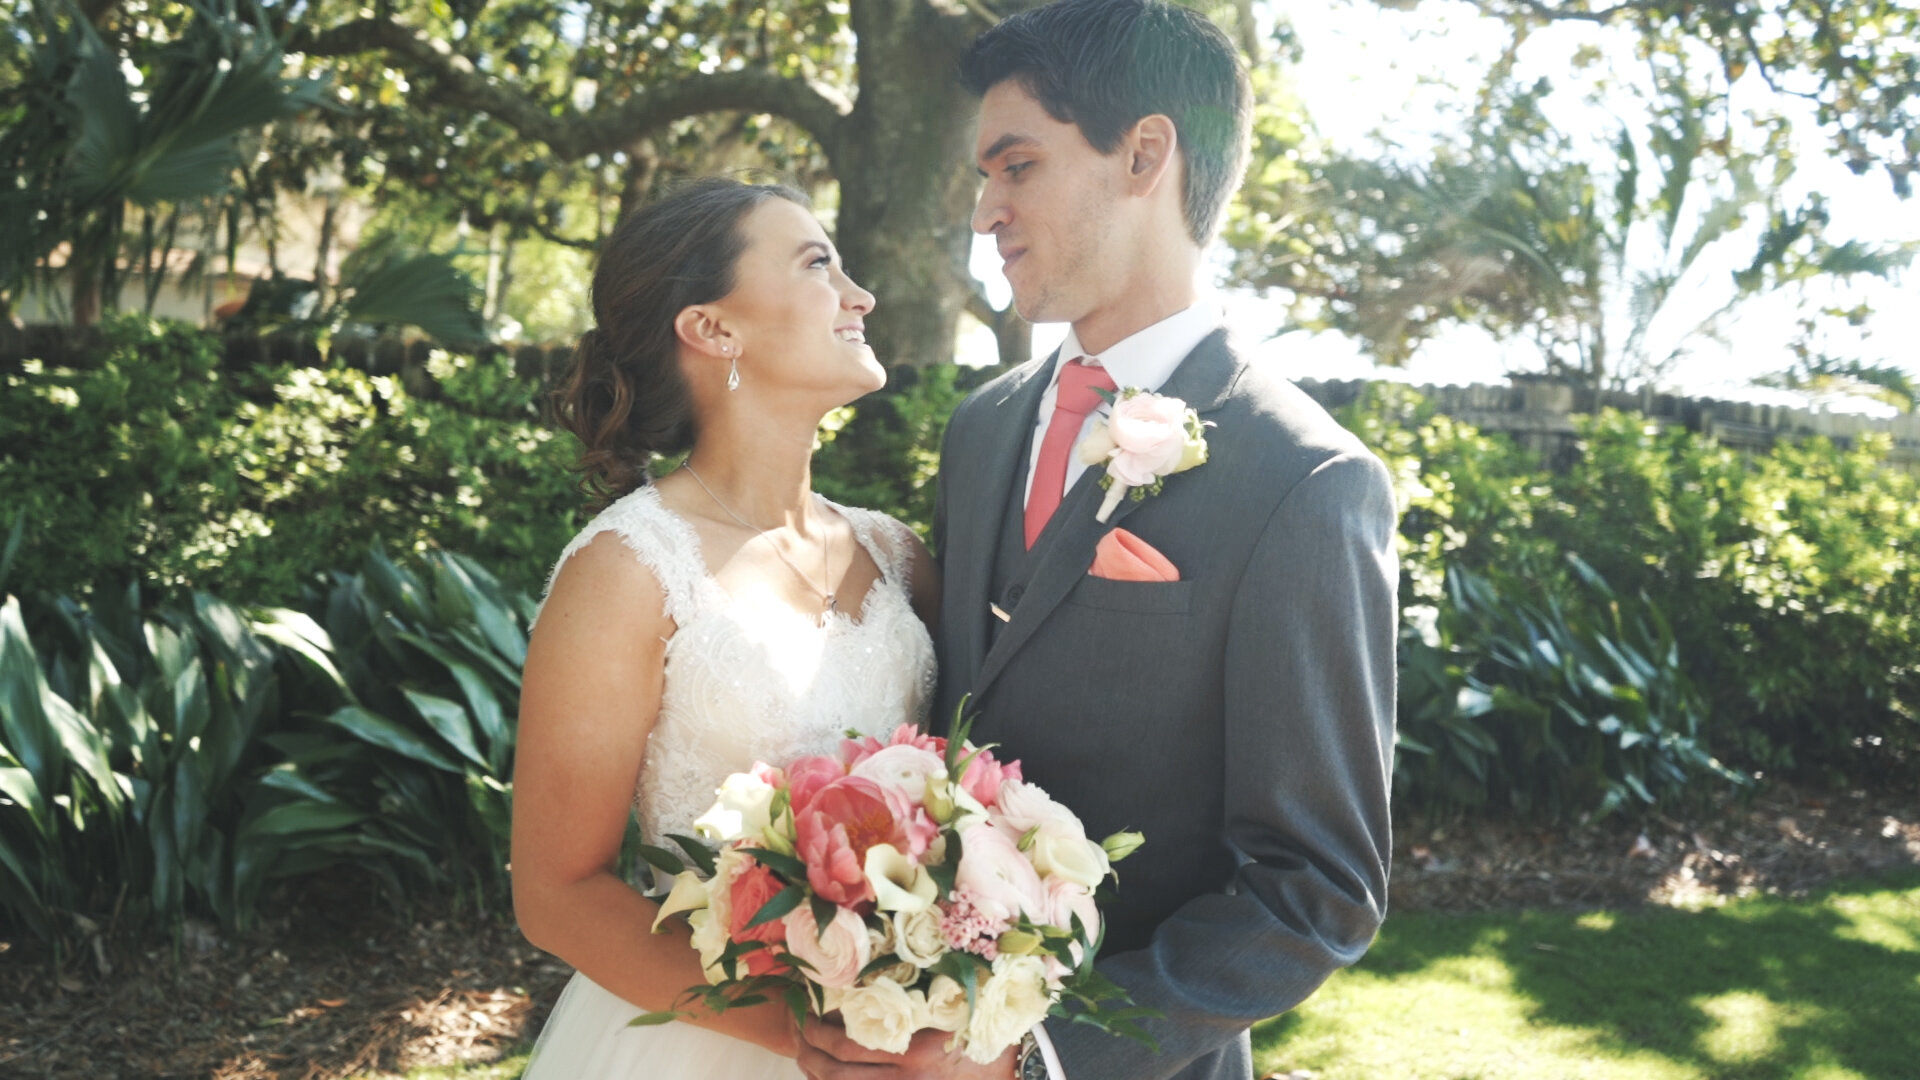 Check out the blog: - Alison + Steven's Wedding